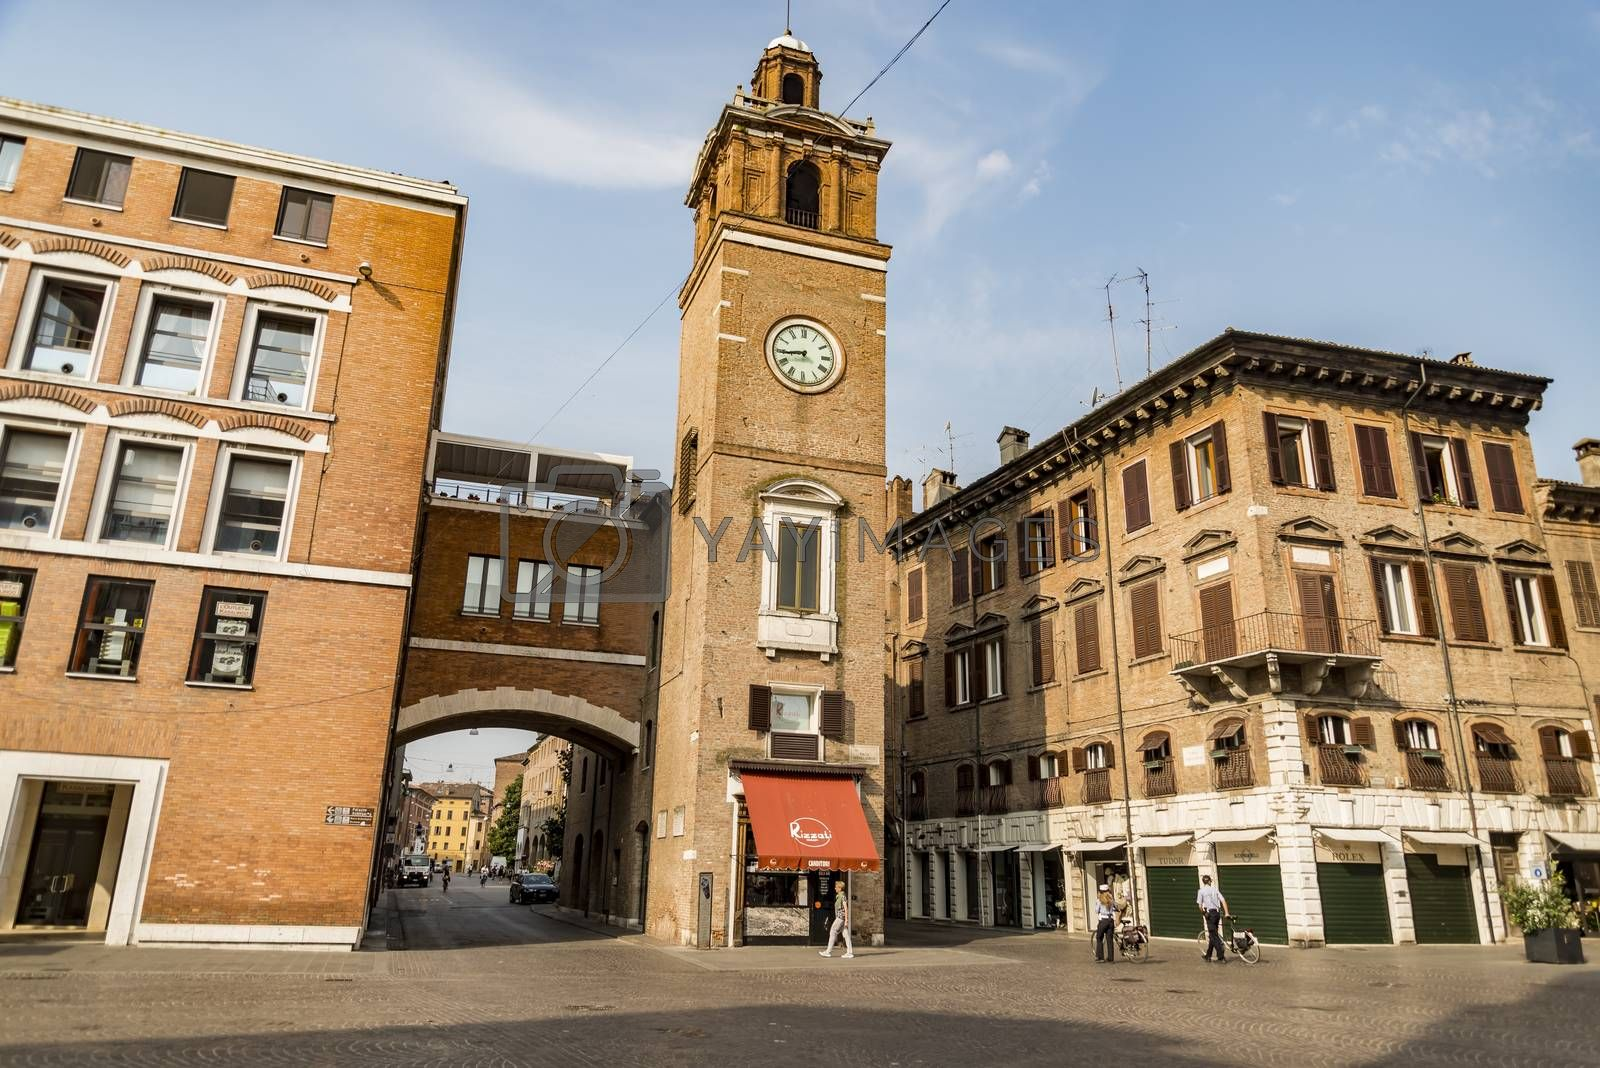 Royalty free image of The Square Trento and Trieste in Ferrara - Italy by edella